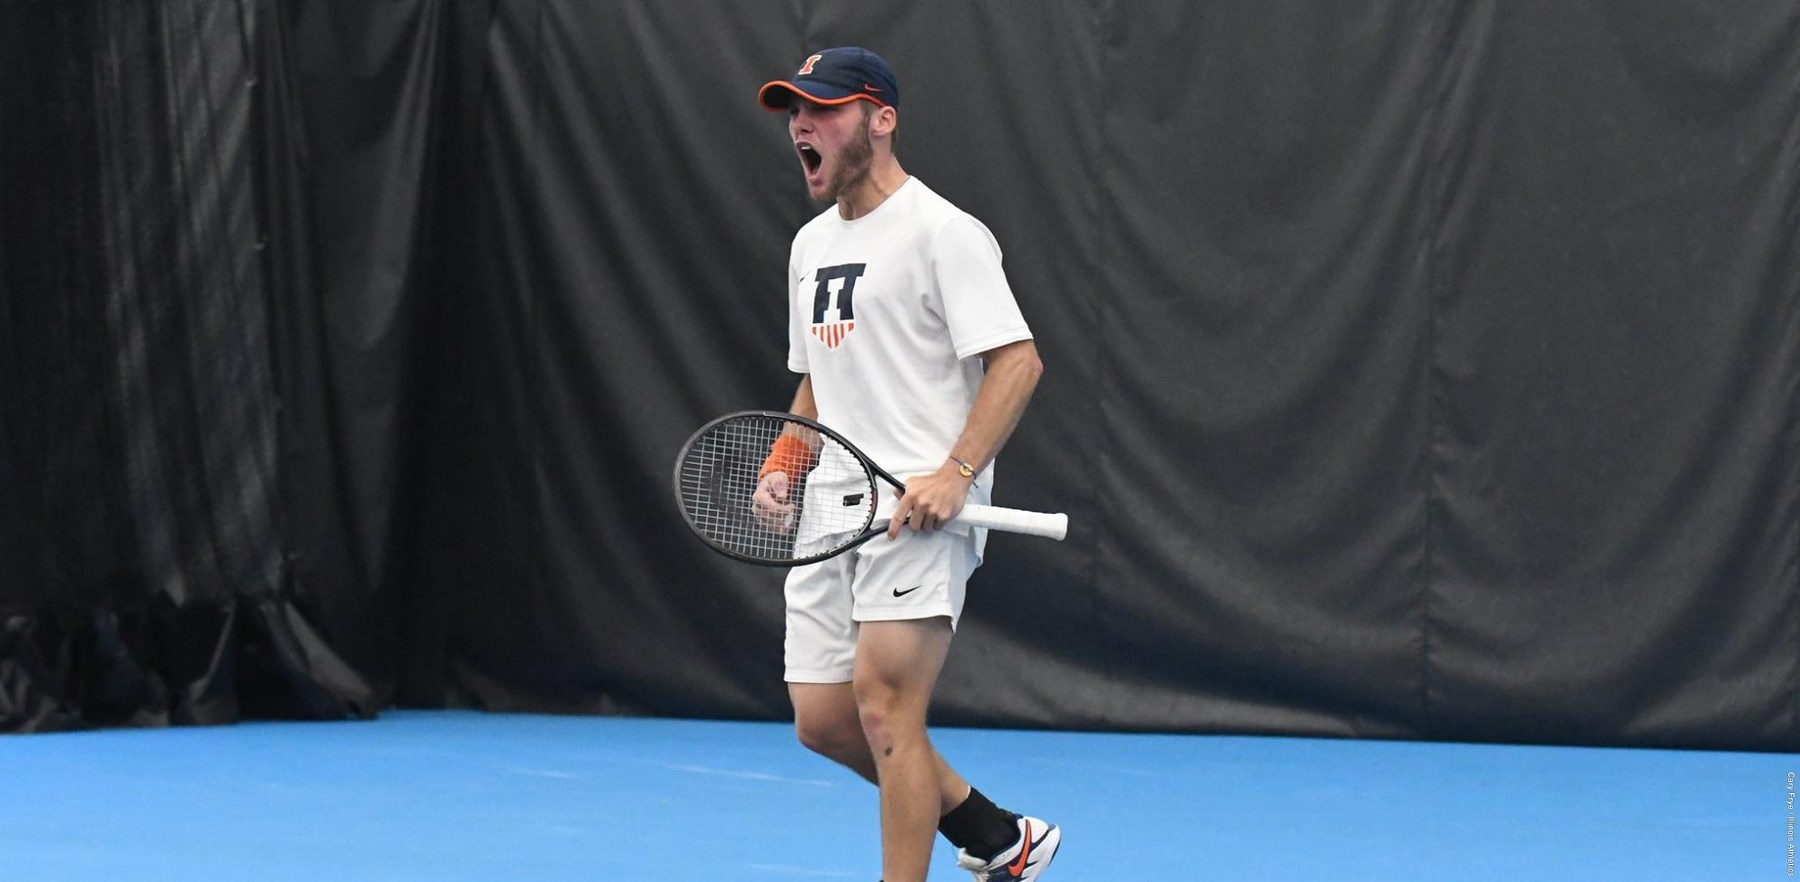 Illini tennis player shouts during a match